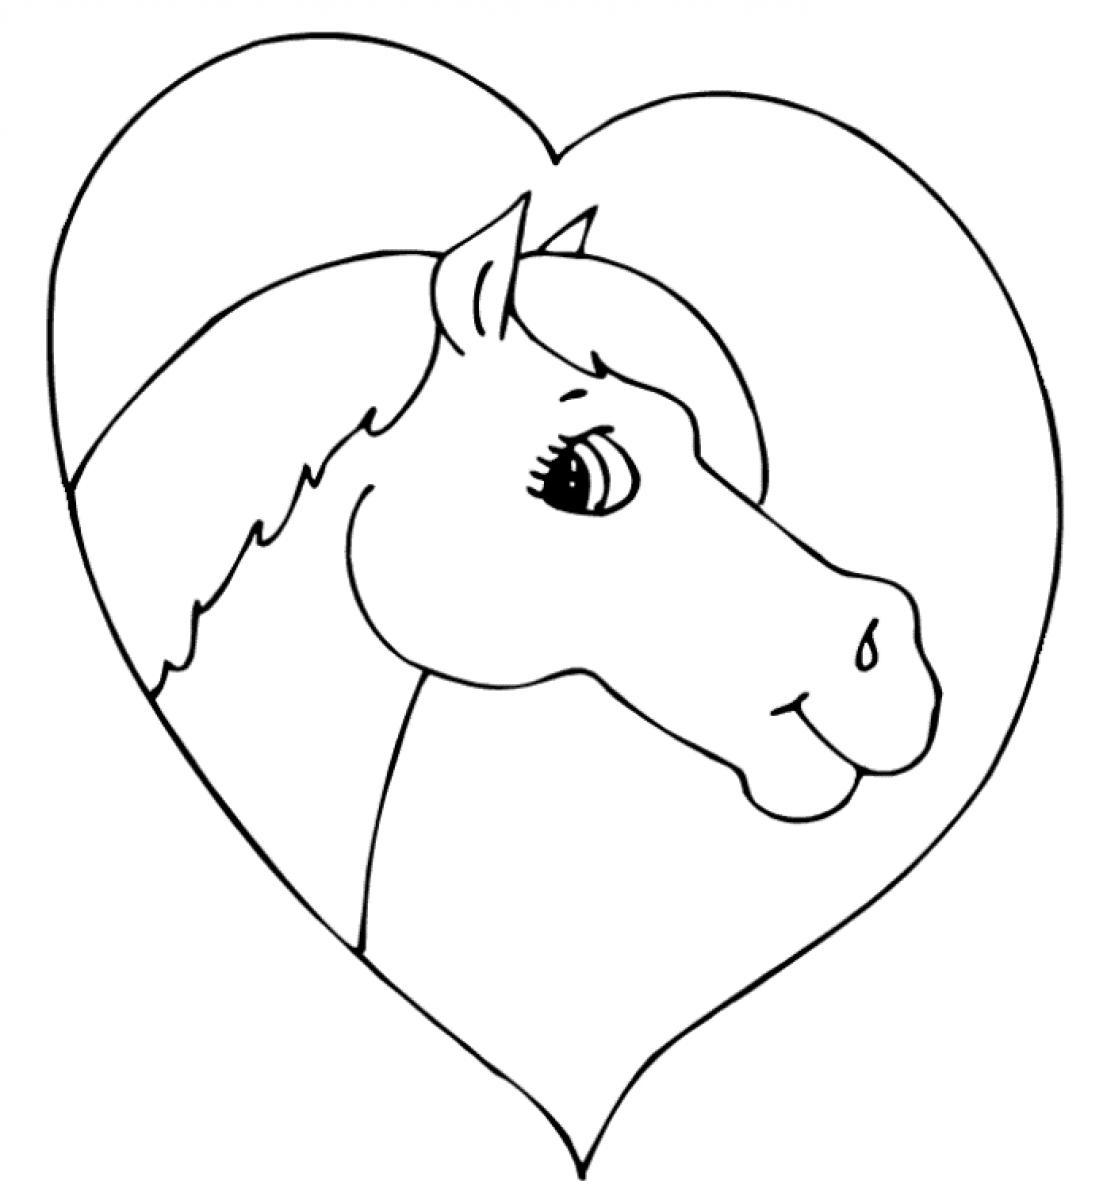 Heart Coloring Pages For Kindergarten : Rainbow heart coloring pages home